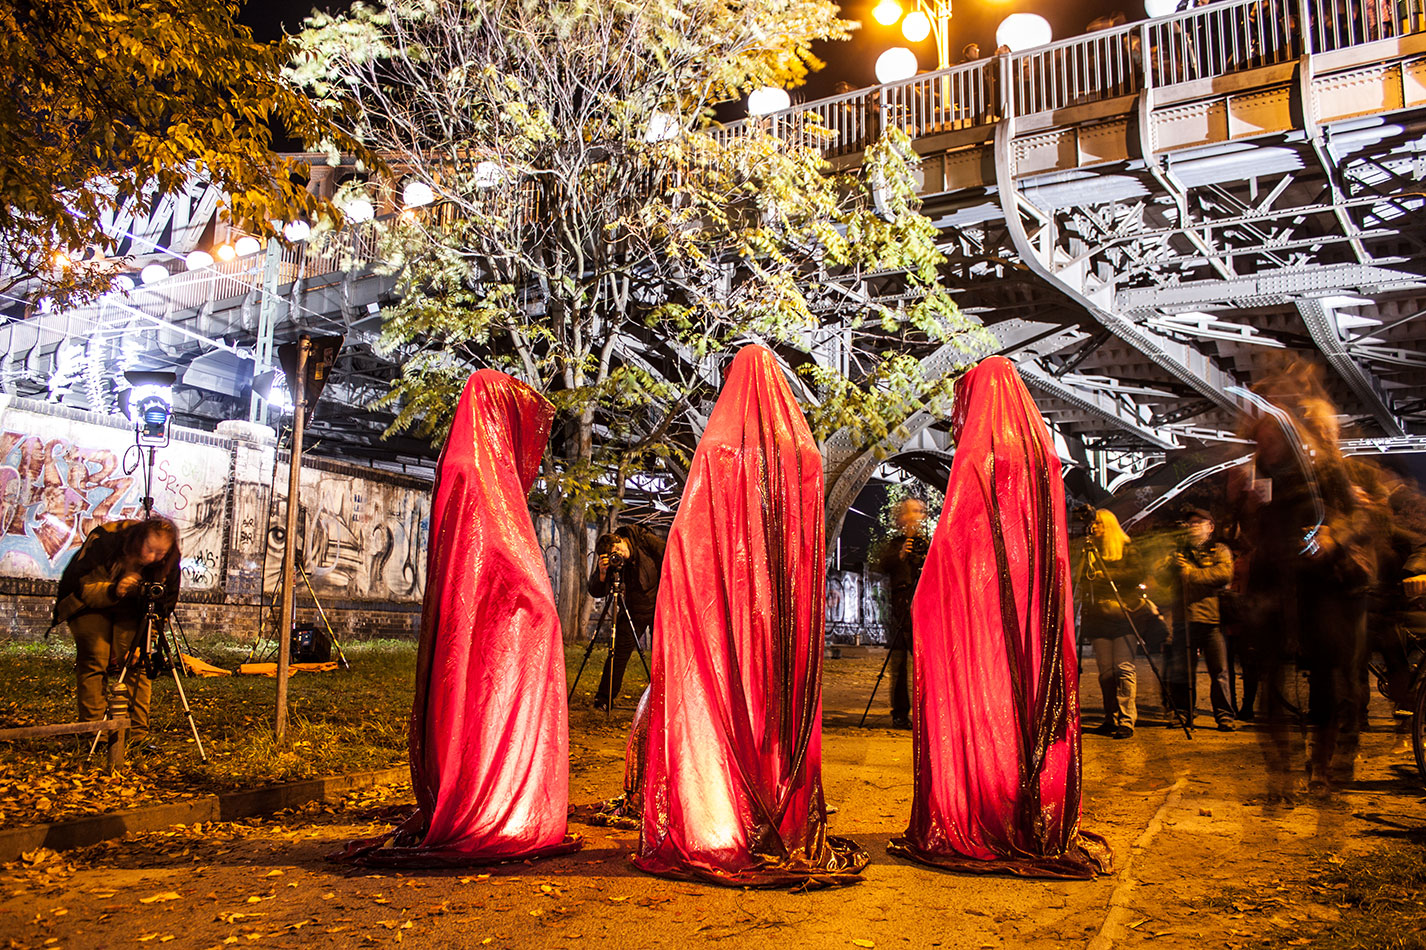 25-jears-wallfall-berlin-germany-contemporary-fine-art-show-arts-design-guardians-of-time-manfred-kili-kielnhofer-4341